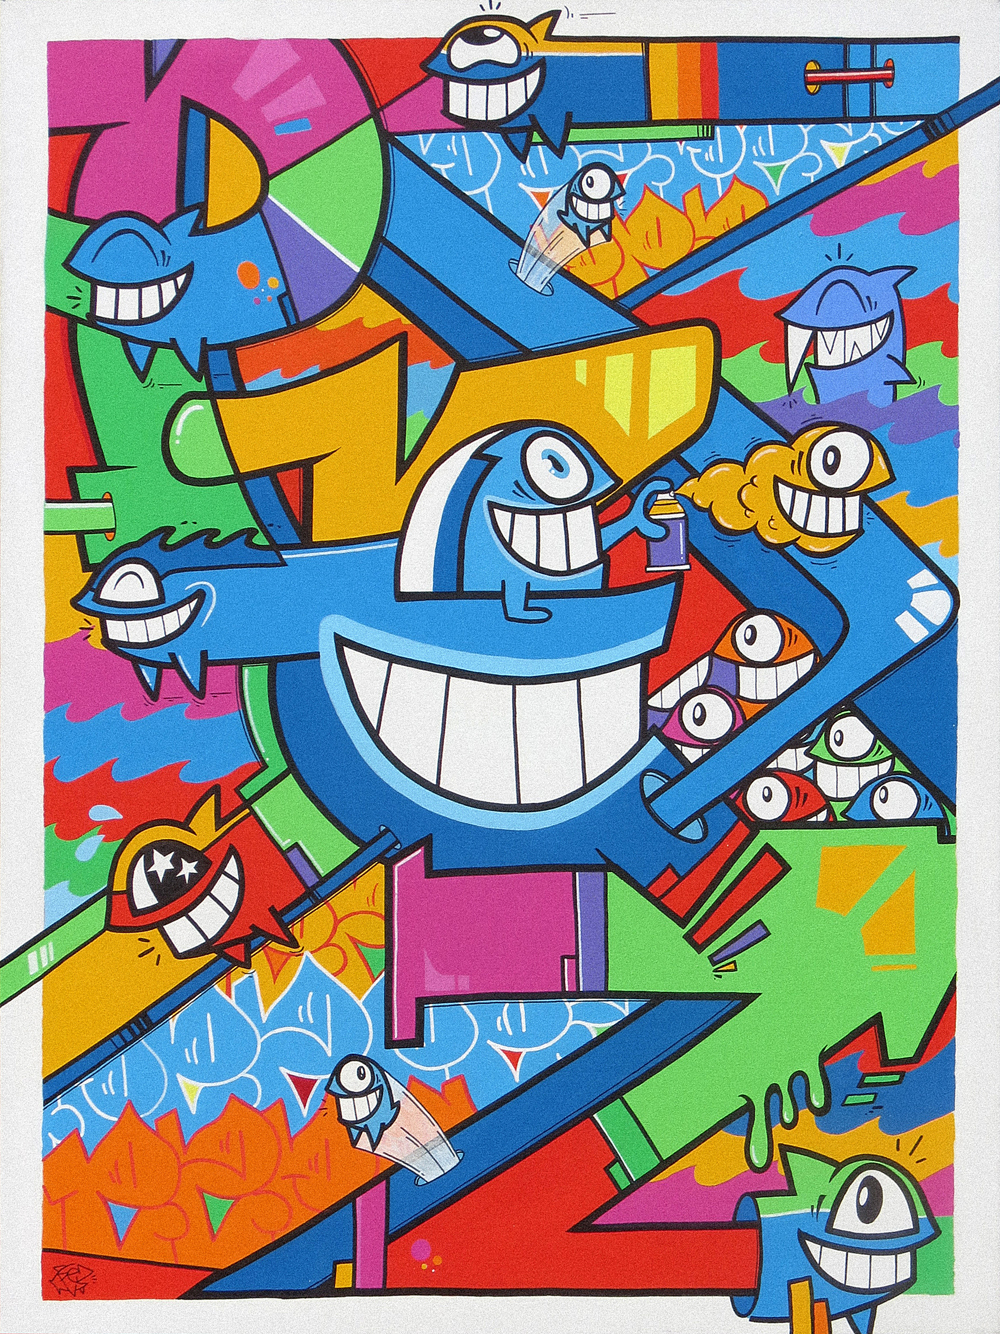 pez_pez in london 2014_acrylics and markers on canvas_100 x 140x5cm_£2500.jpg